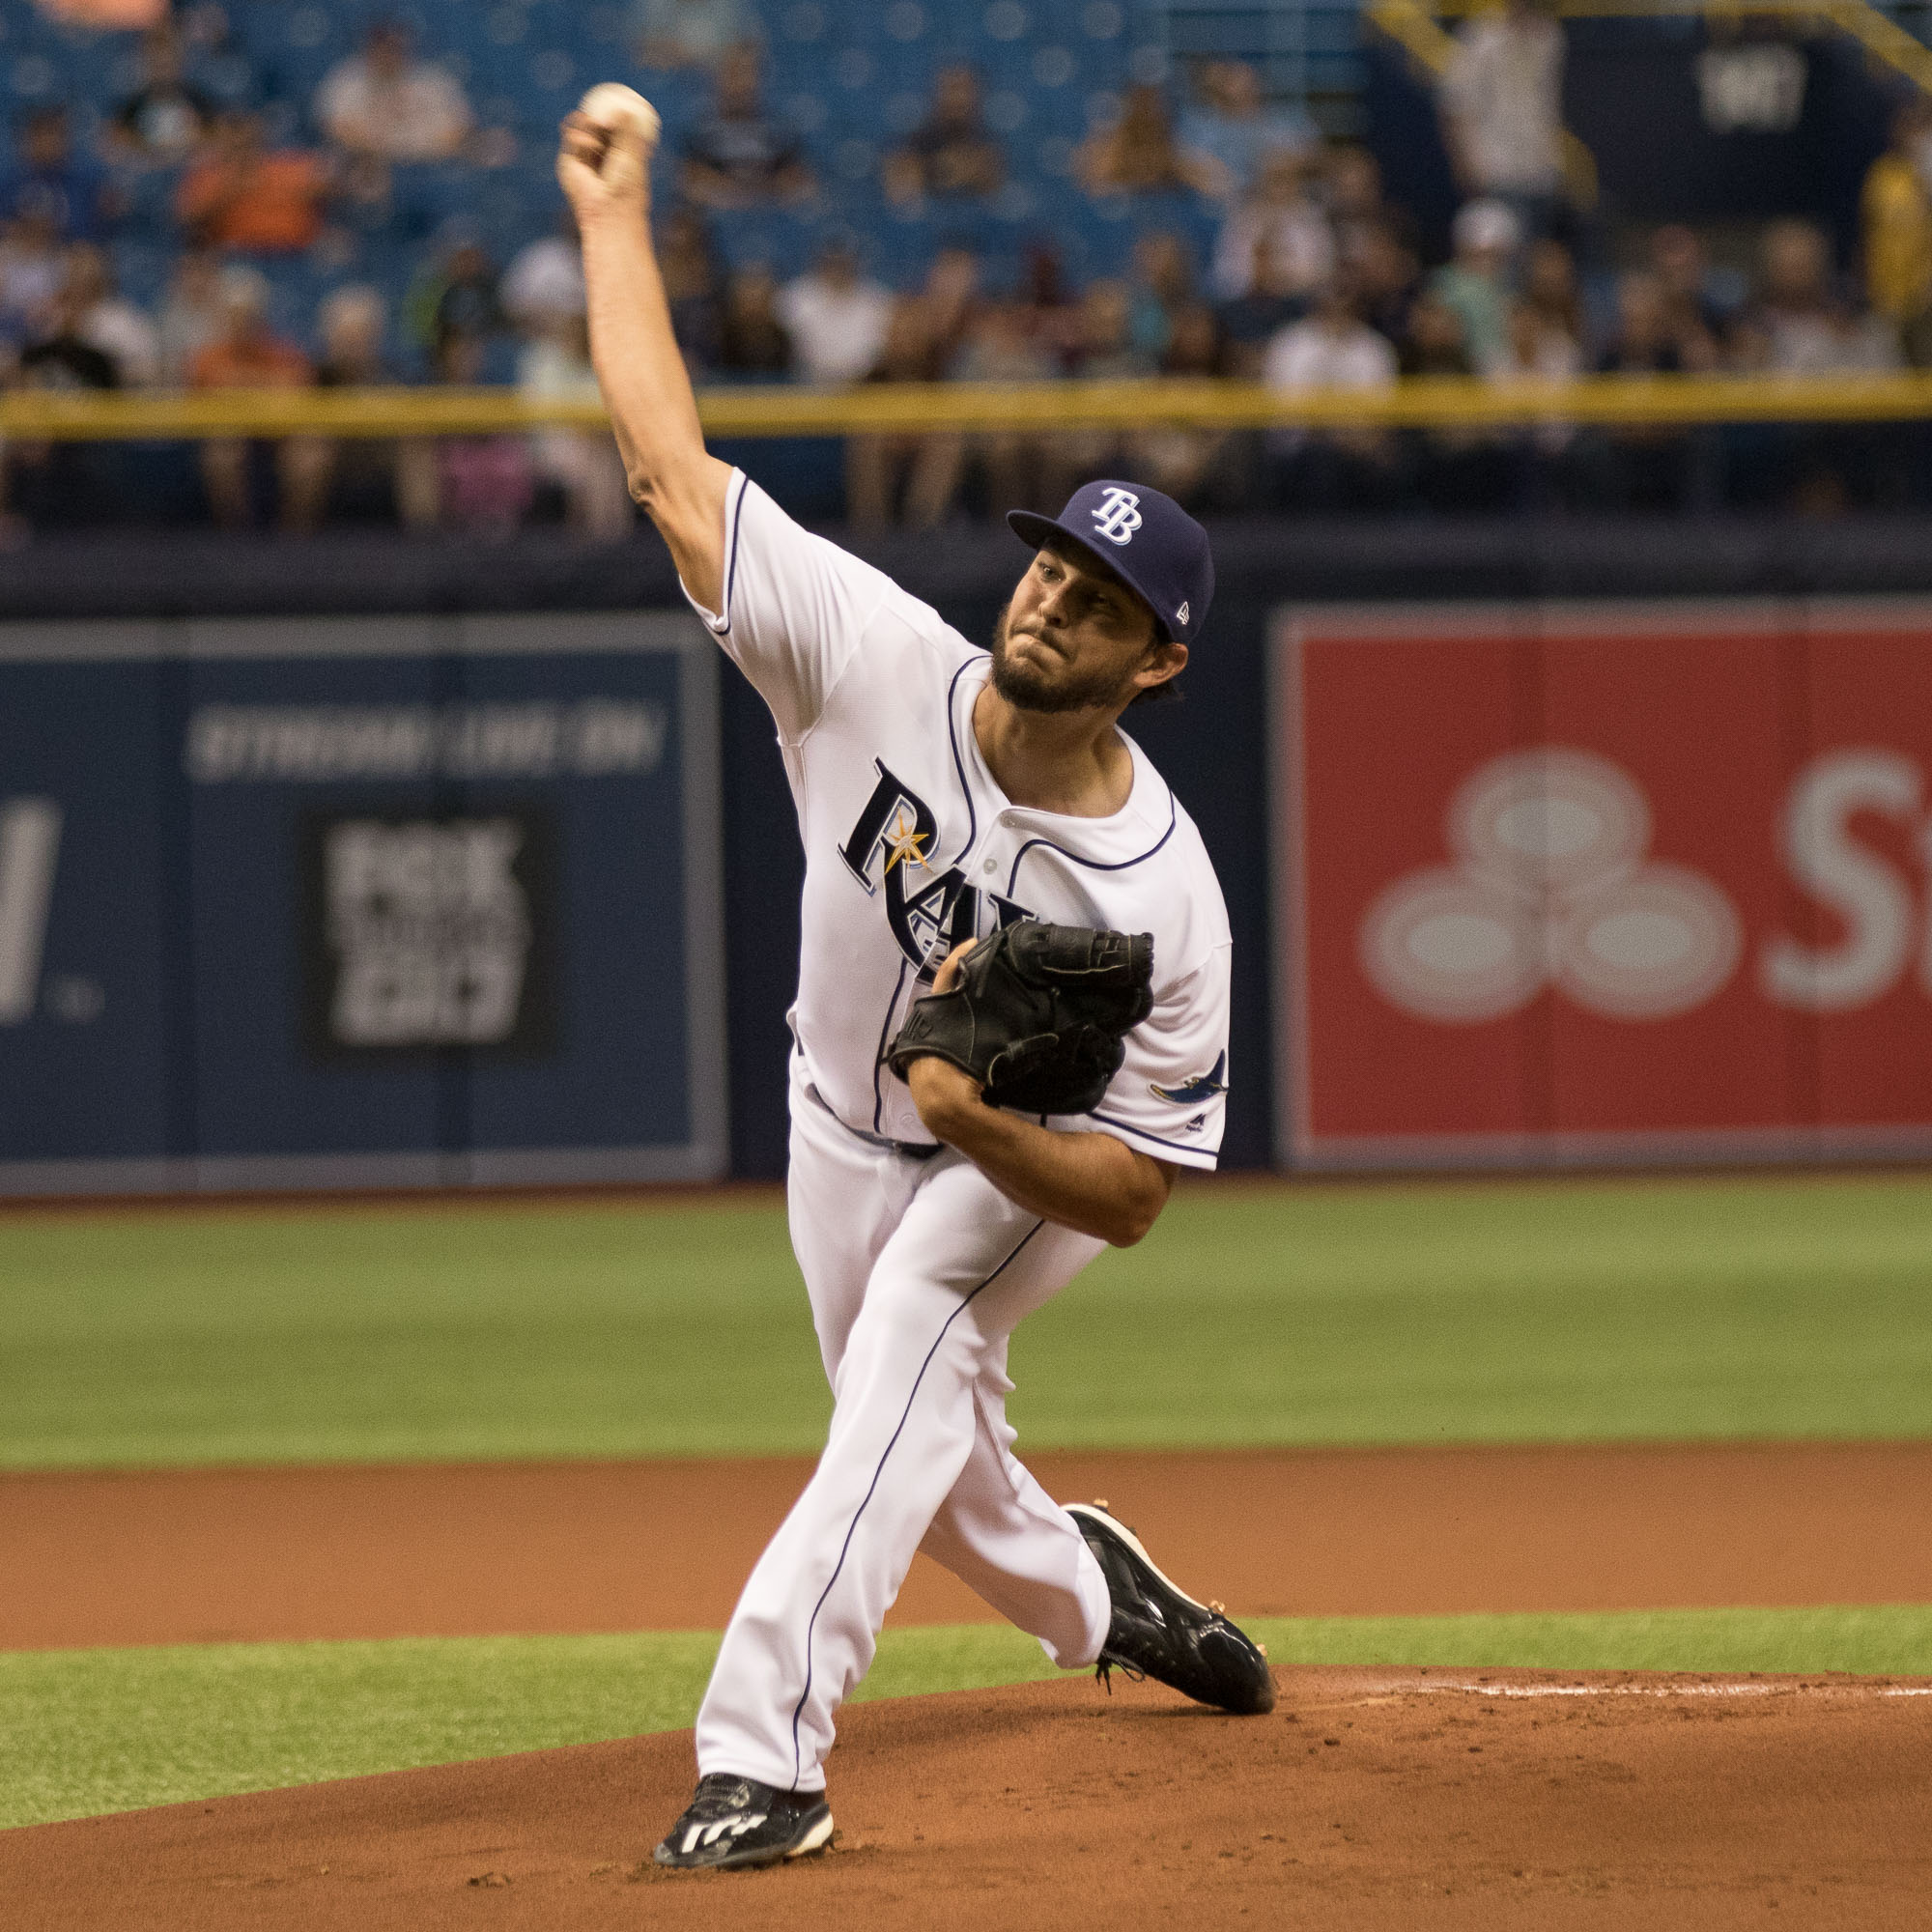 Faria won his third game in a row for the Rays./STEVEN MUNCIE